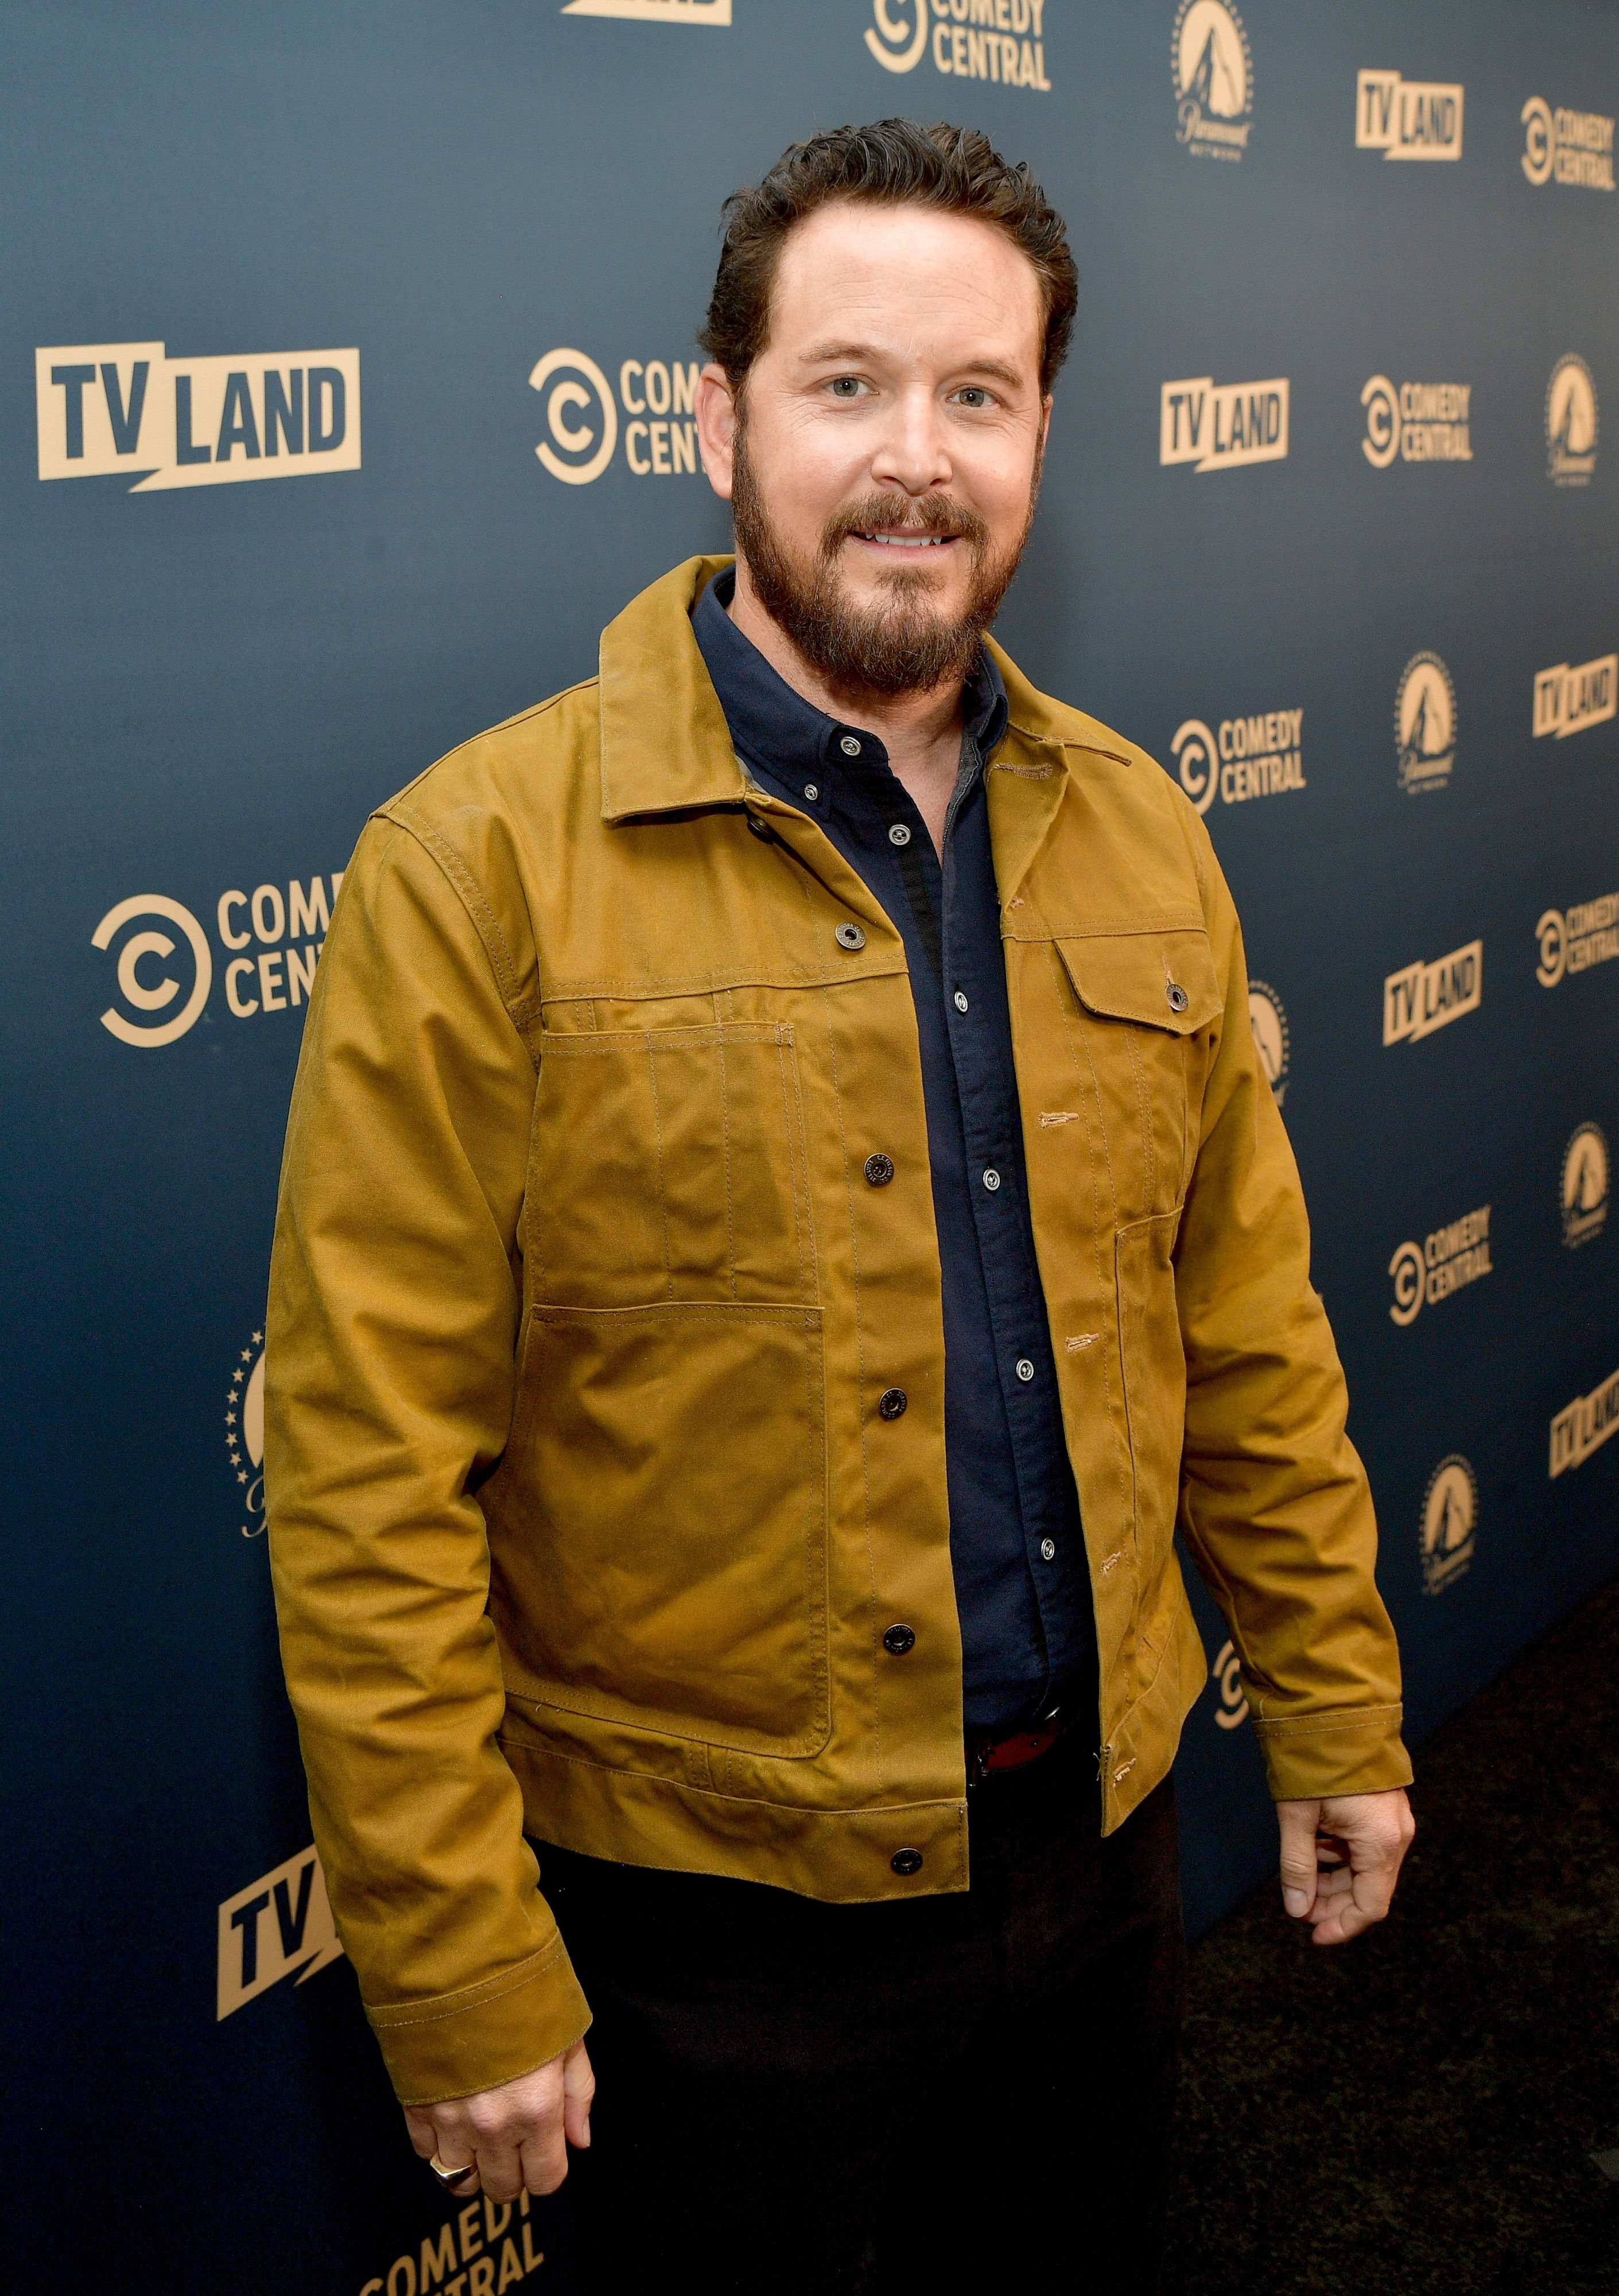 Cole Hauser attends the Comedy Central, Paramount Network and TV Land summer press day at The London Hotel on May 30, 2019 in West Hollywood, California. | Photo: Getty Images.